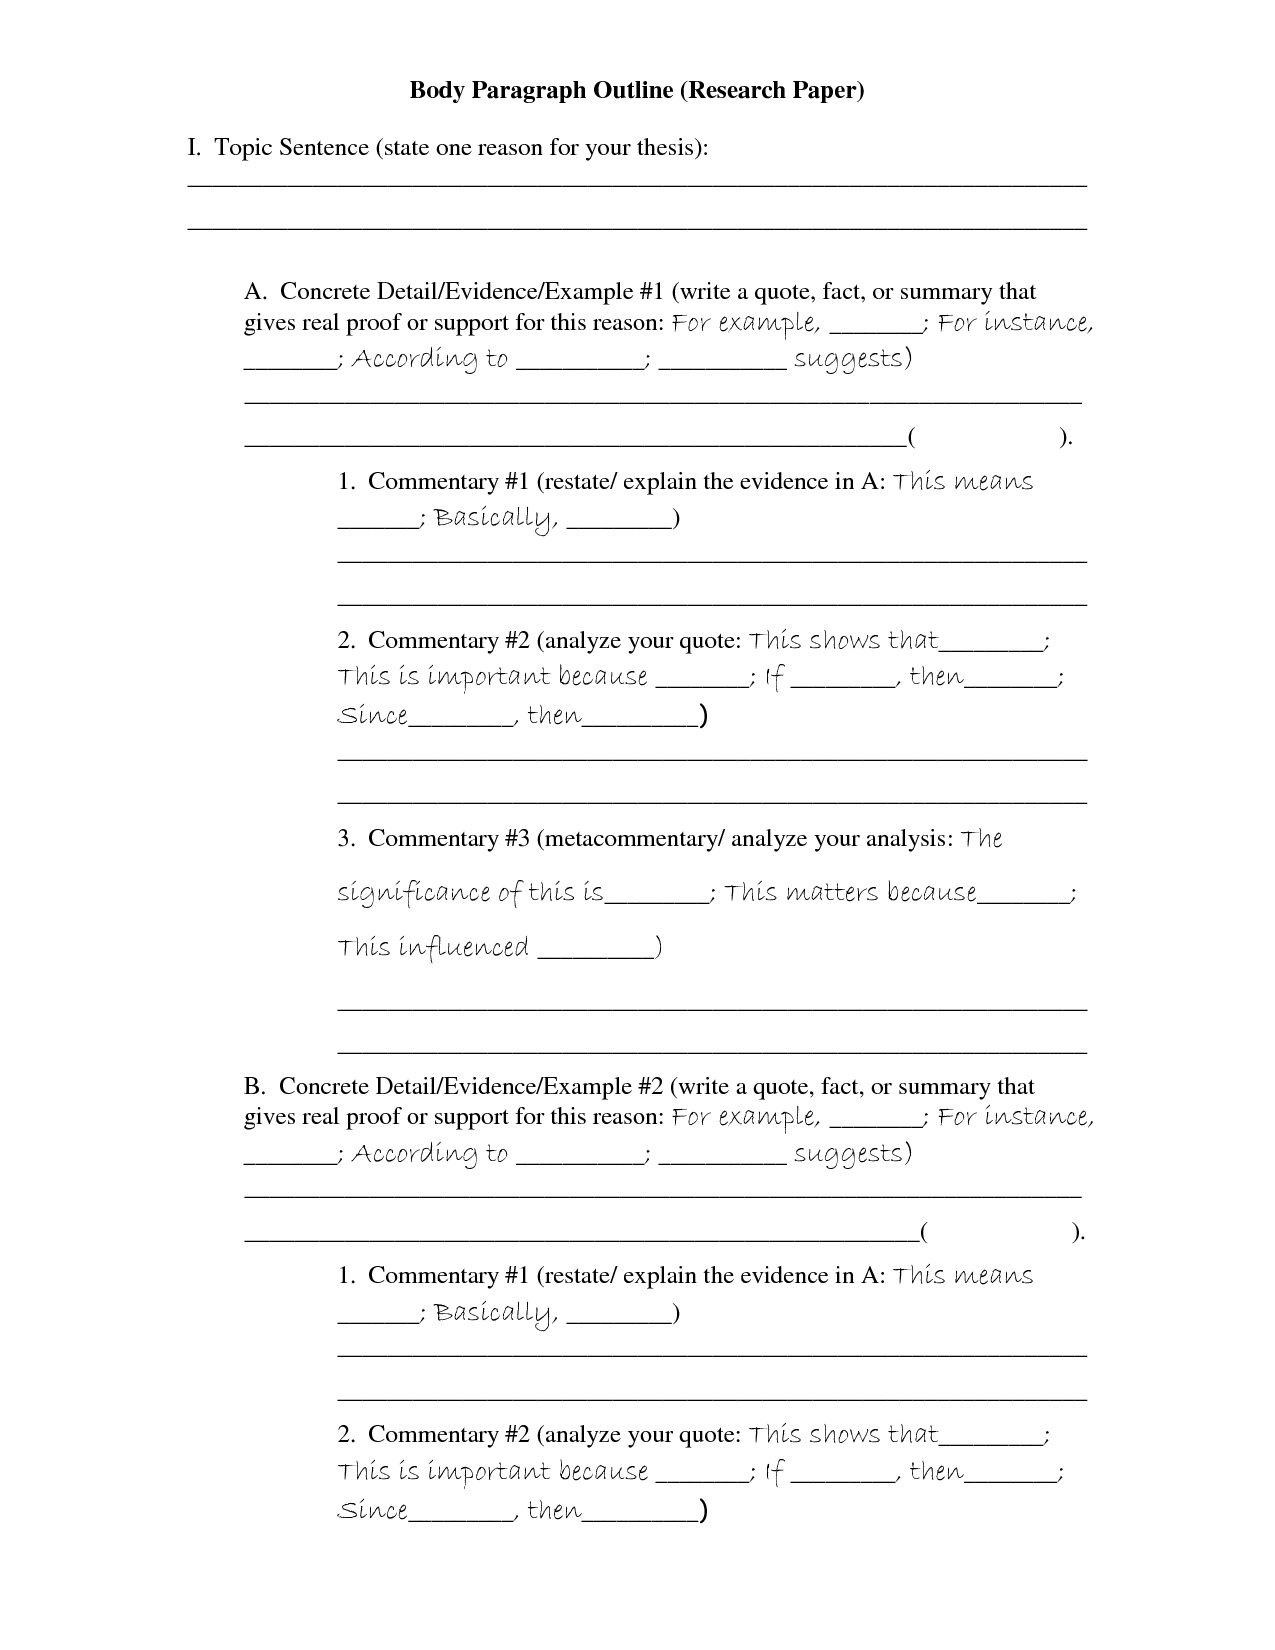 Research Paper Body Paragraph Outline